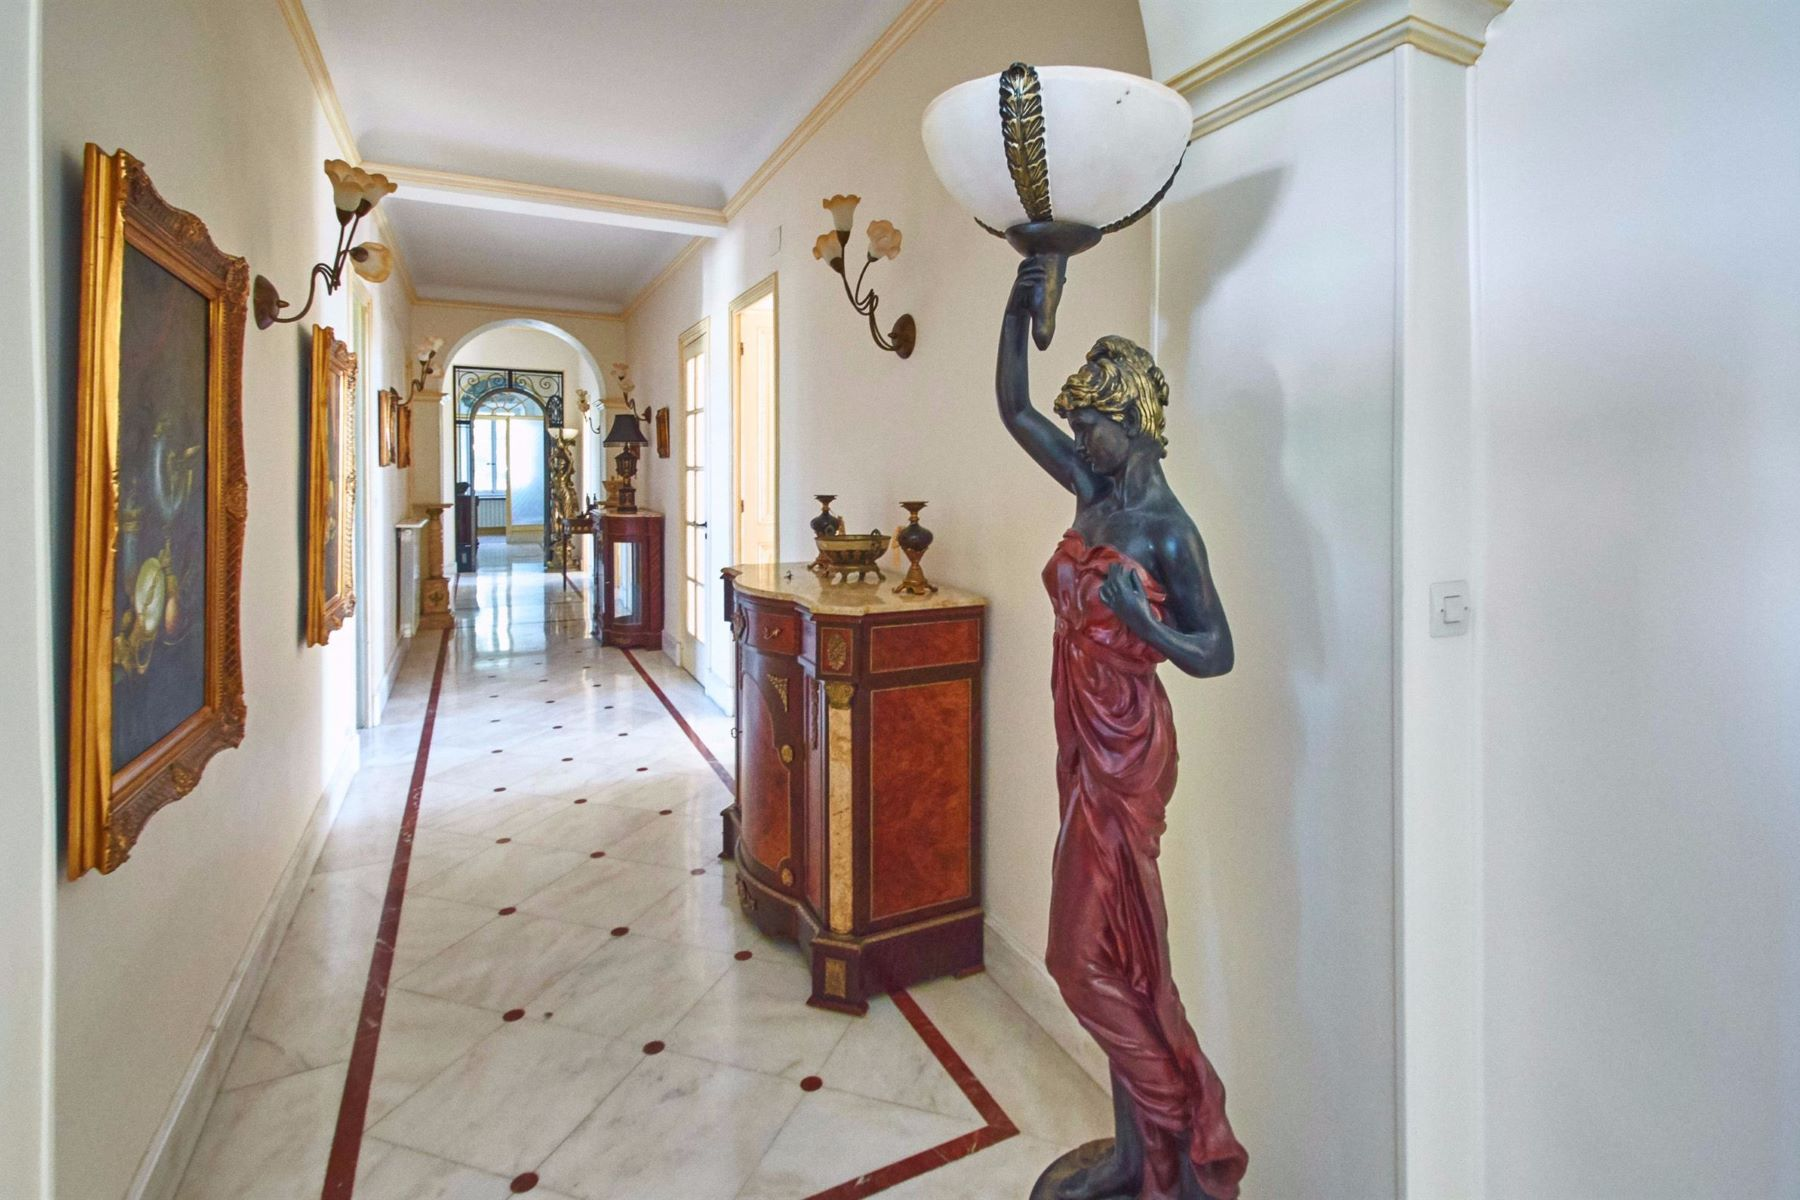 Apartment for Sale at Bourgeois apartment for sale in Cannes Oxford Cannes, Provence-Alpes-Cote D'Azur, 06400 France